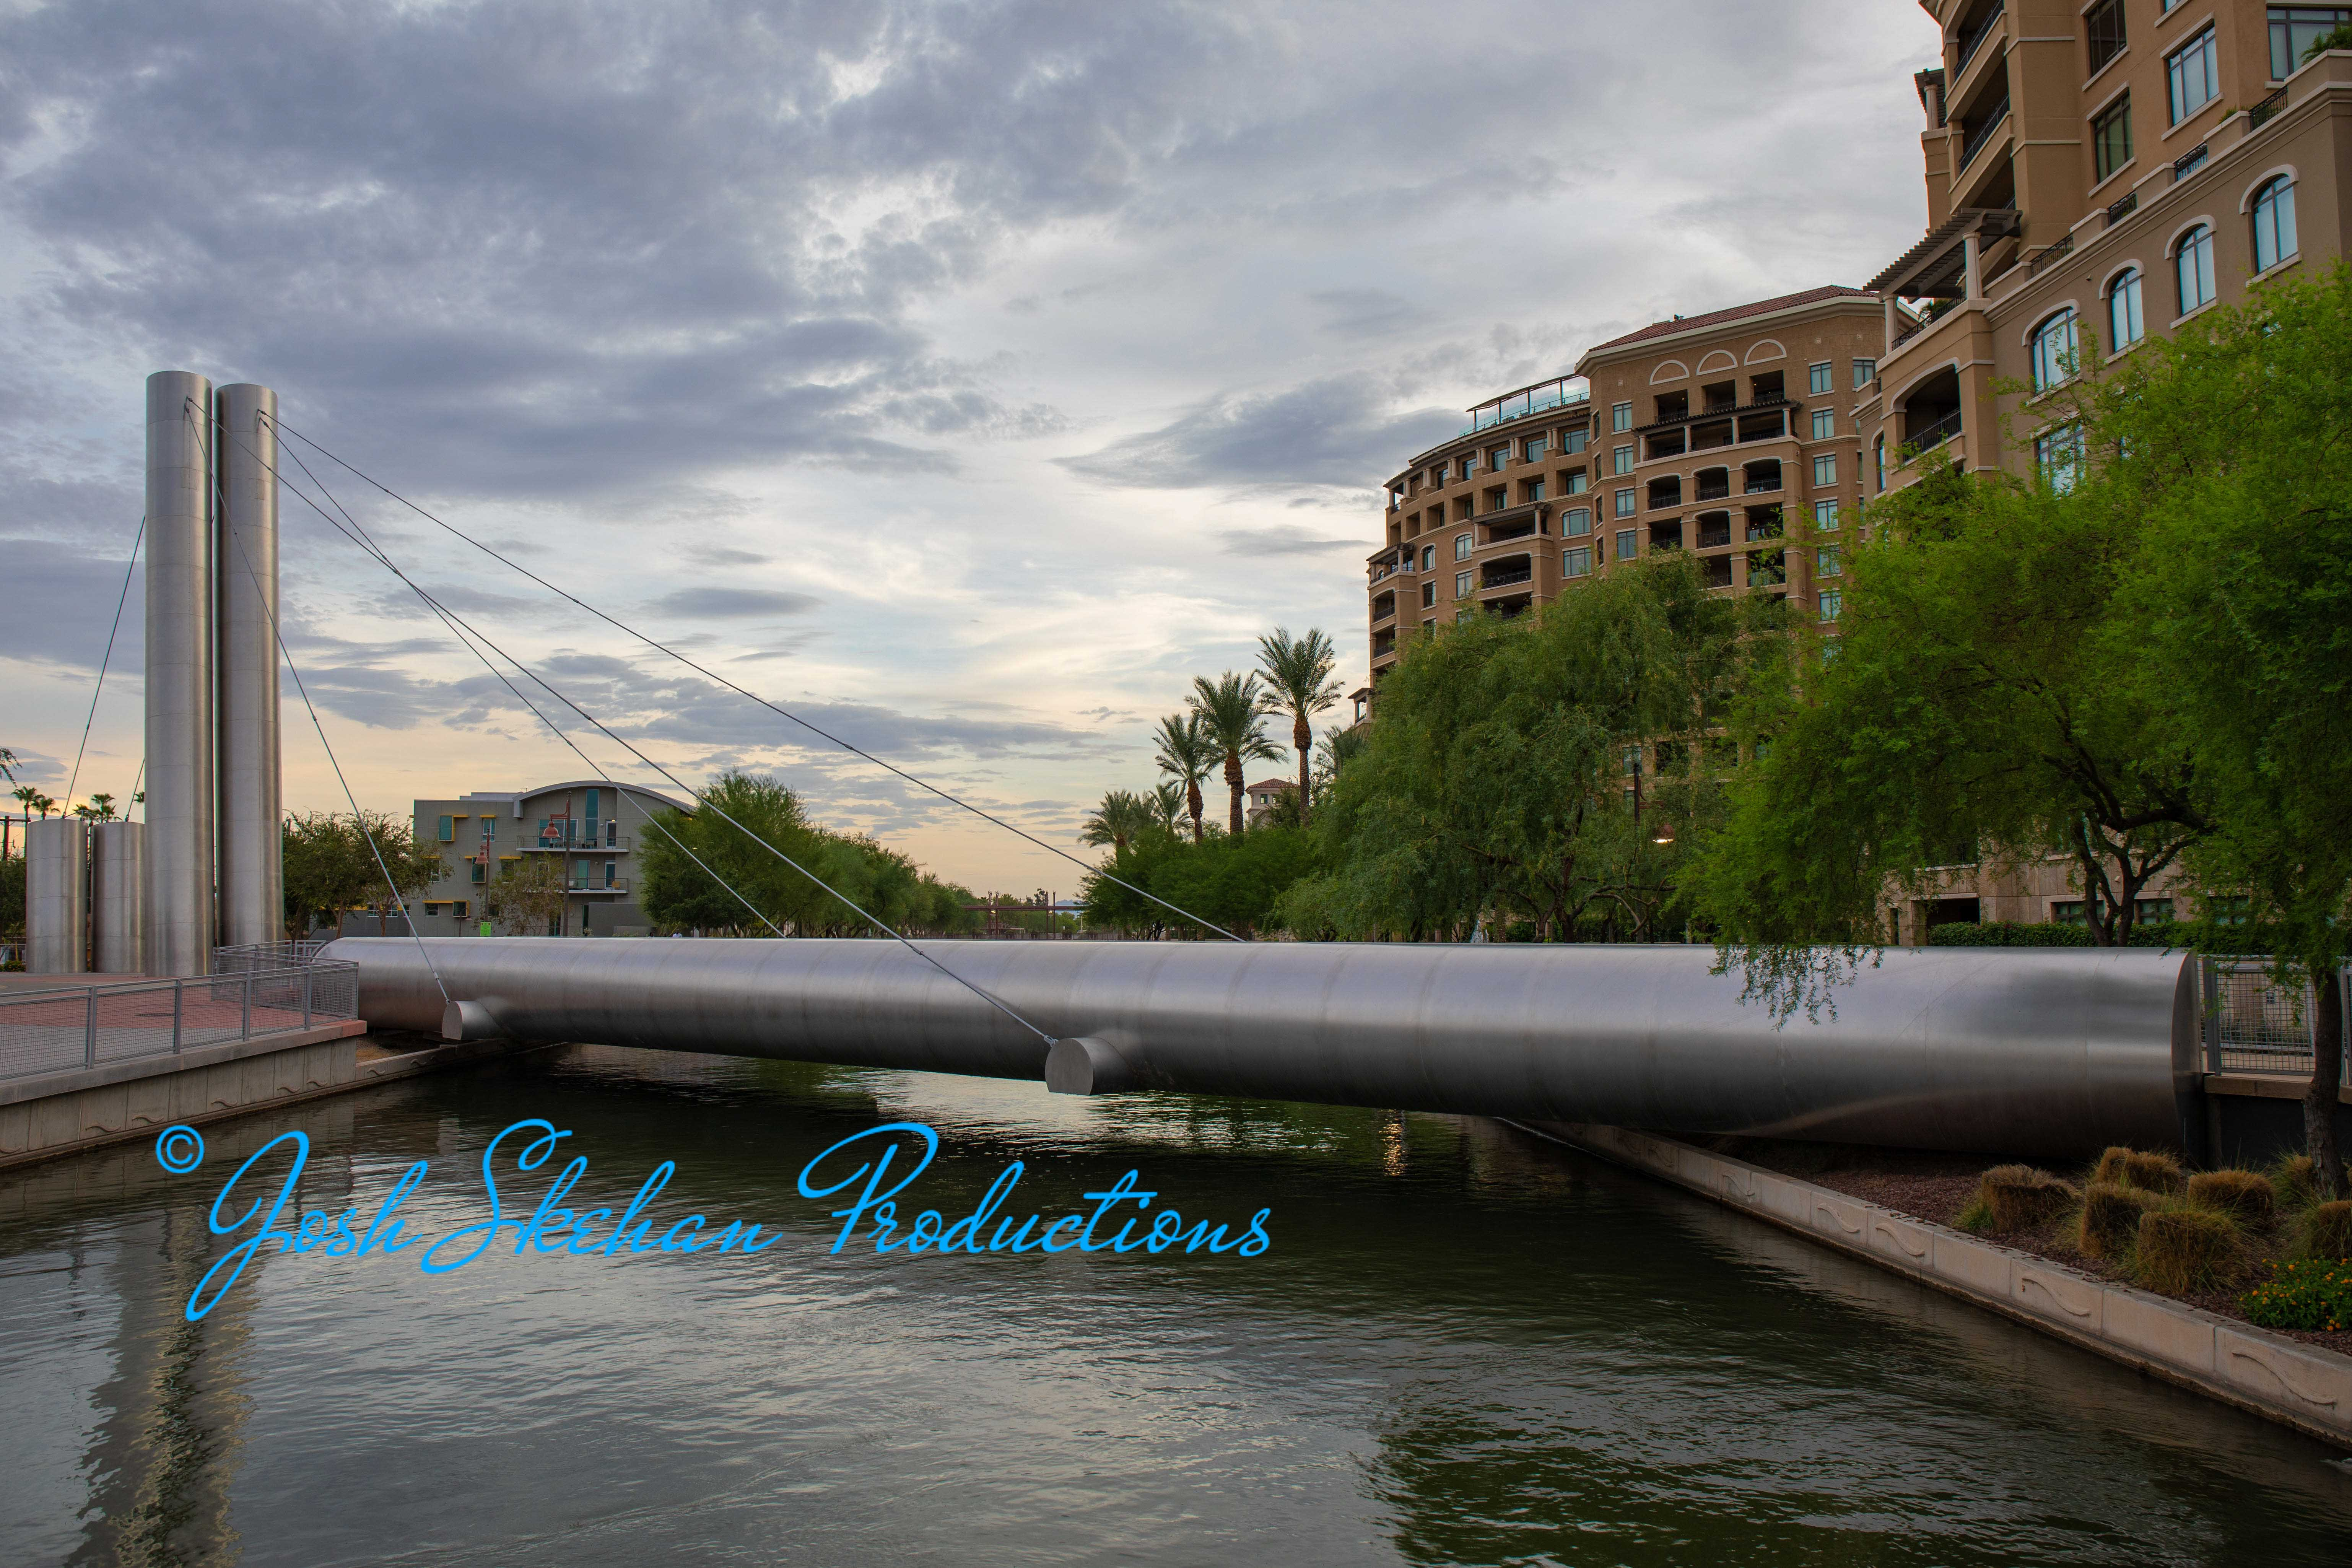 23 scottsdale waterfront - photographer